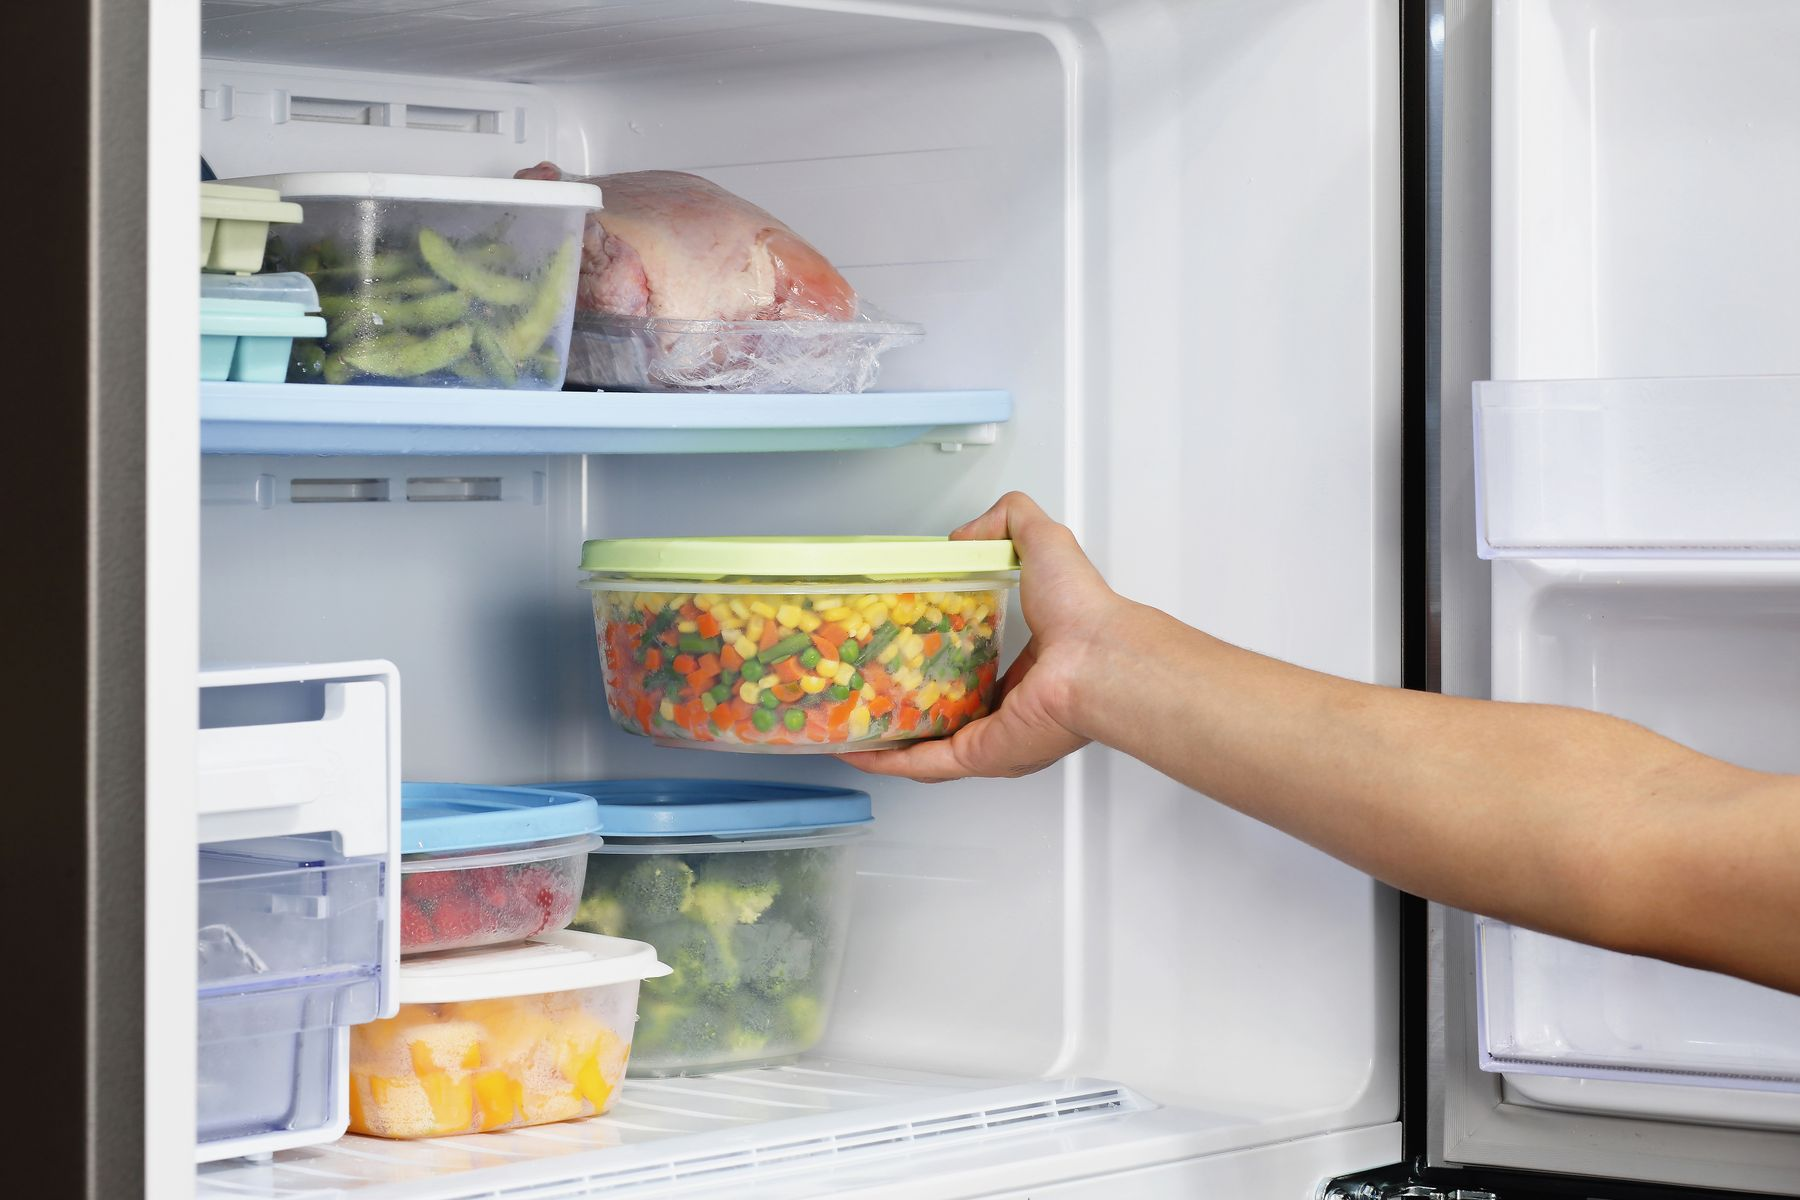 Step 7: person putting food back in fridge